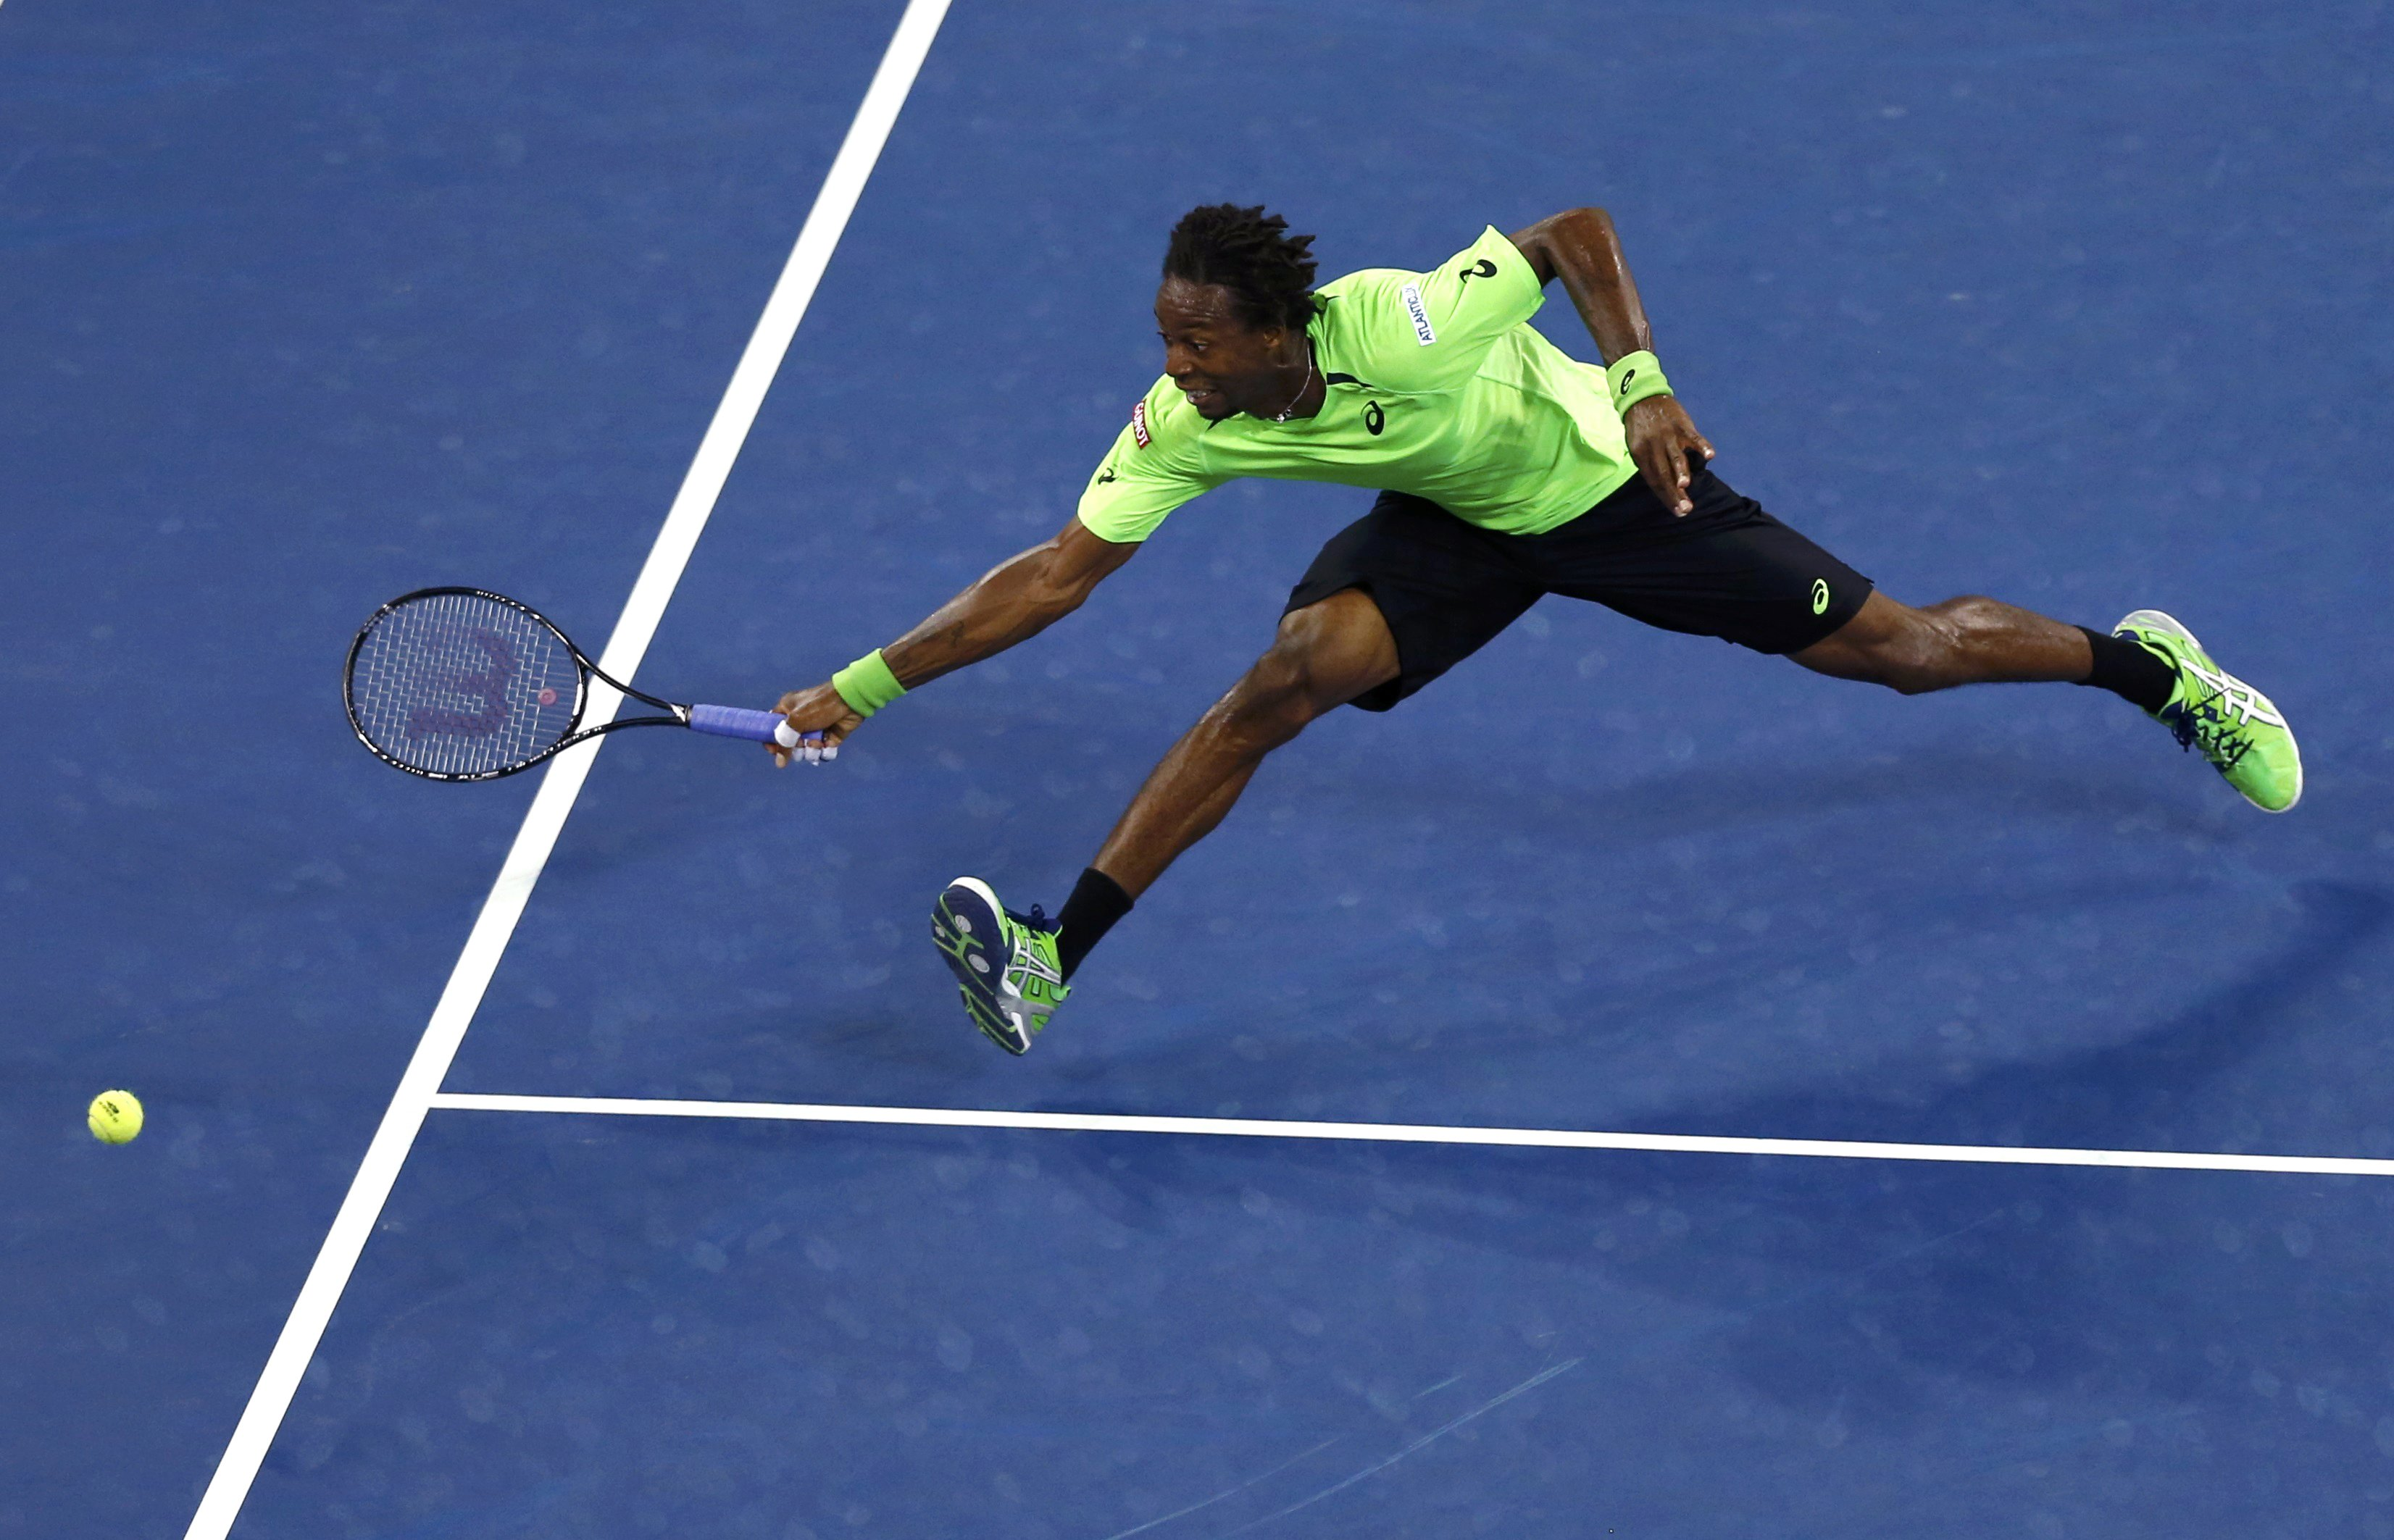 Gael Monfils of France stretches to try and make a return in the fourth set to Roger Federer of Switzerland during their quarter-final men's singles match at the 2014 U.S. Open tennis tournament in New York, September 4, 2014. REUTERS/Adam Hunger (UNITED